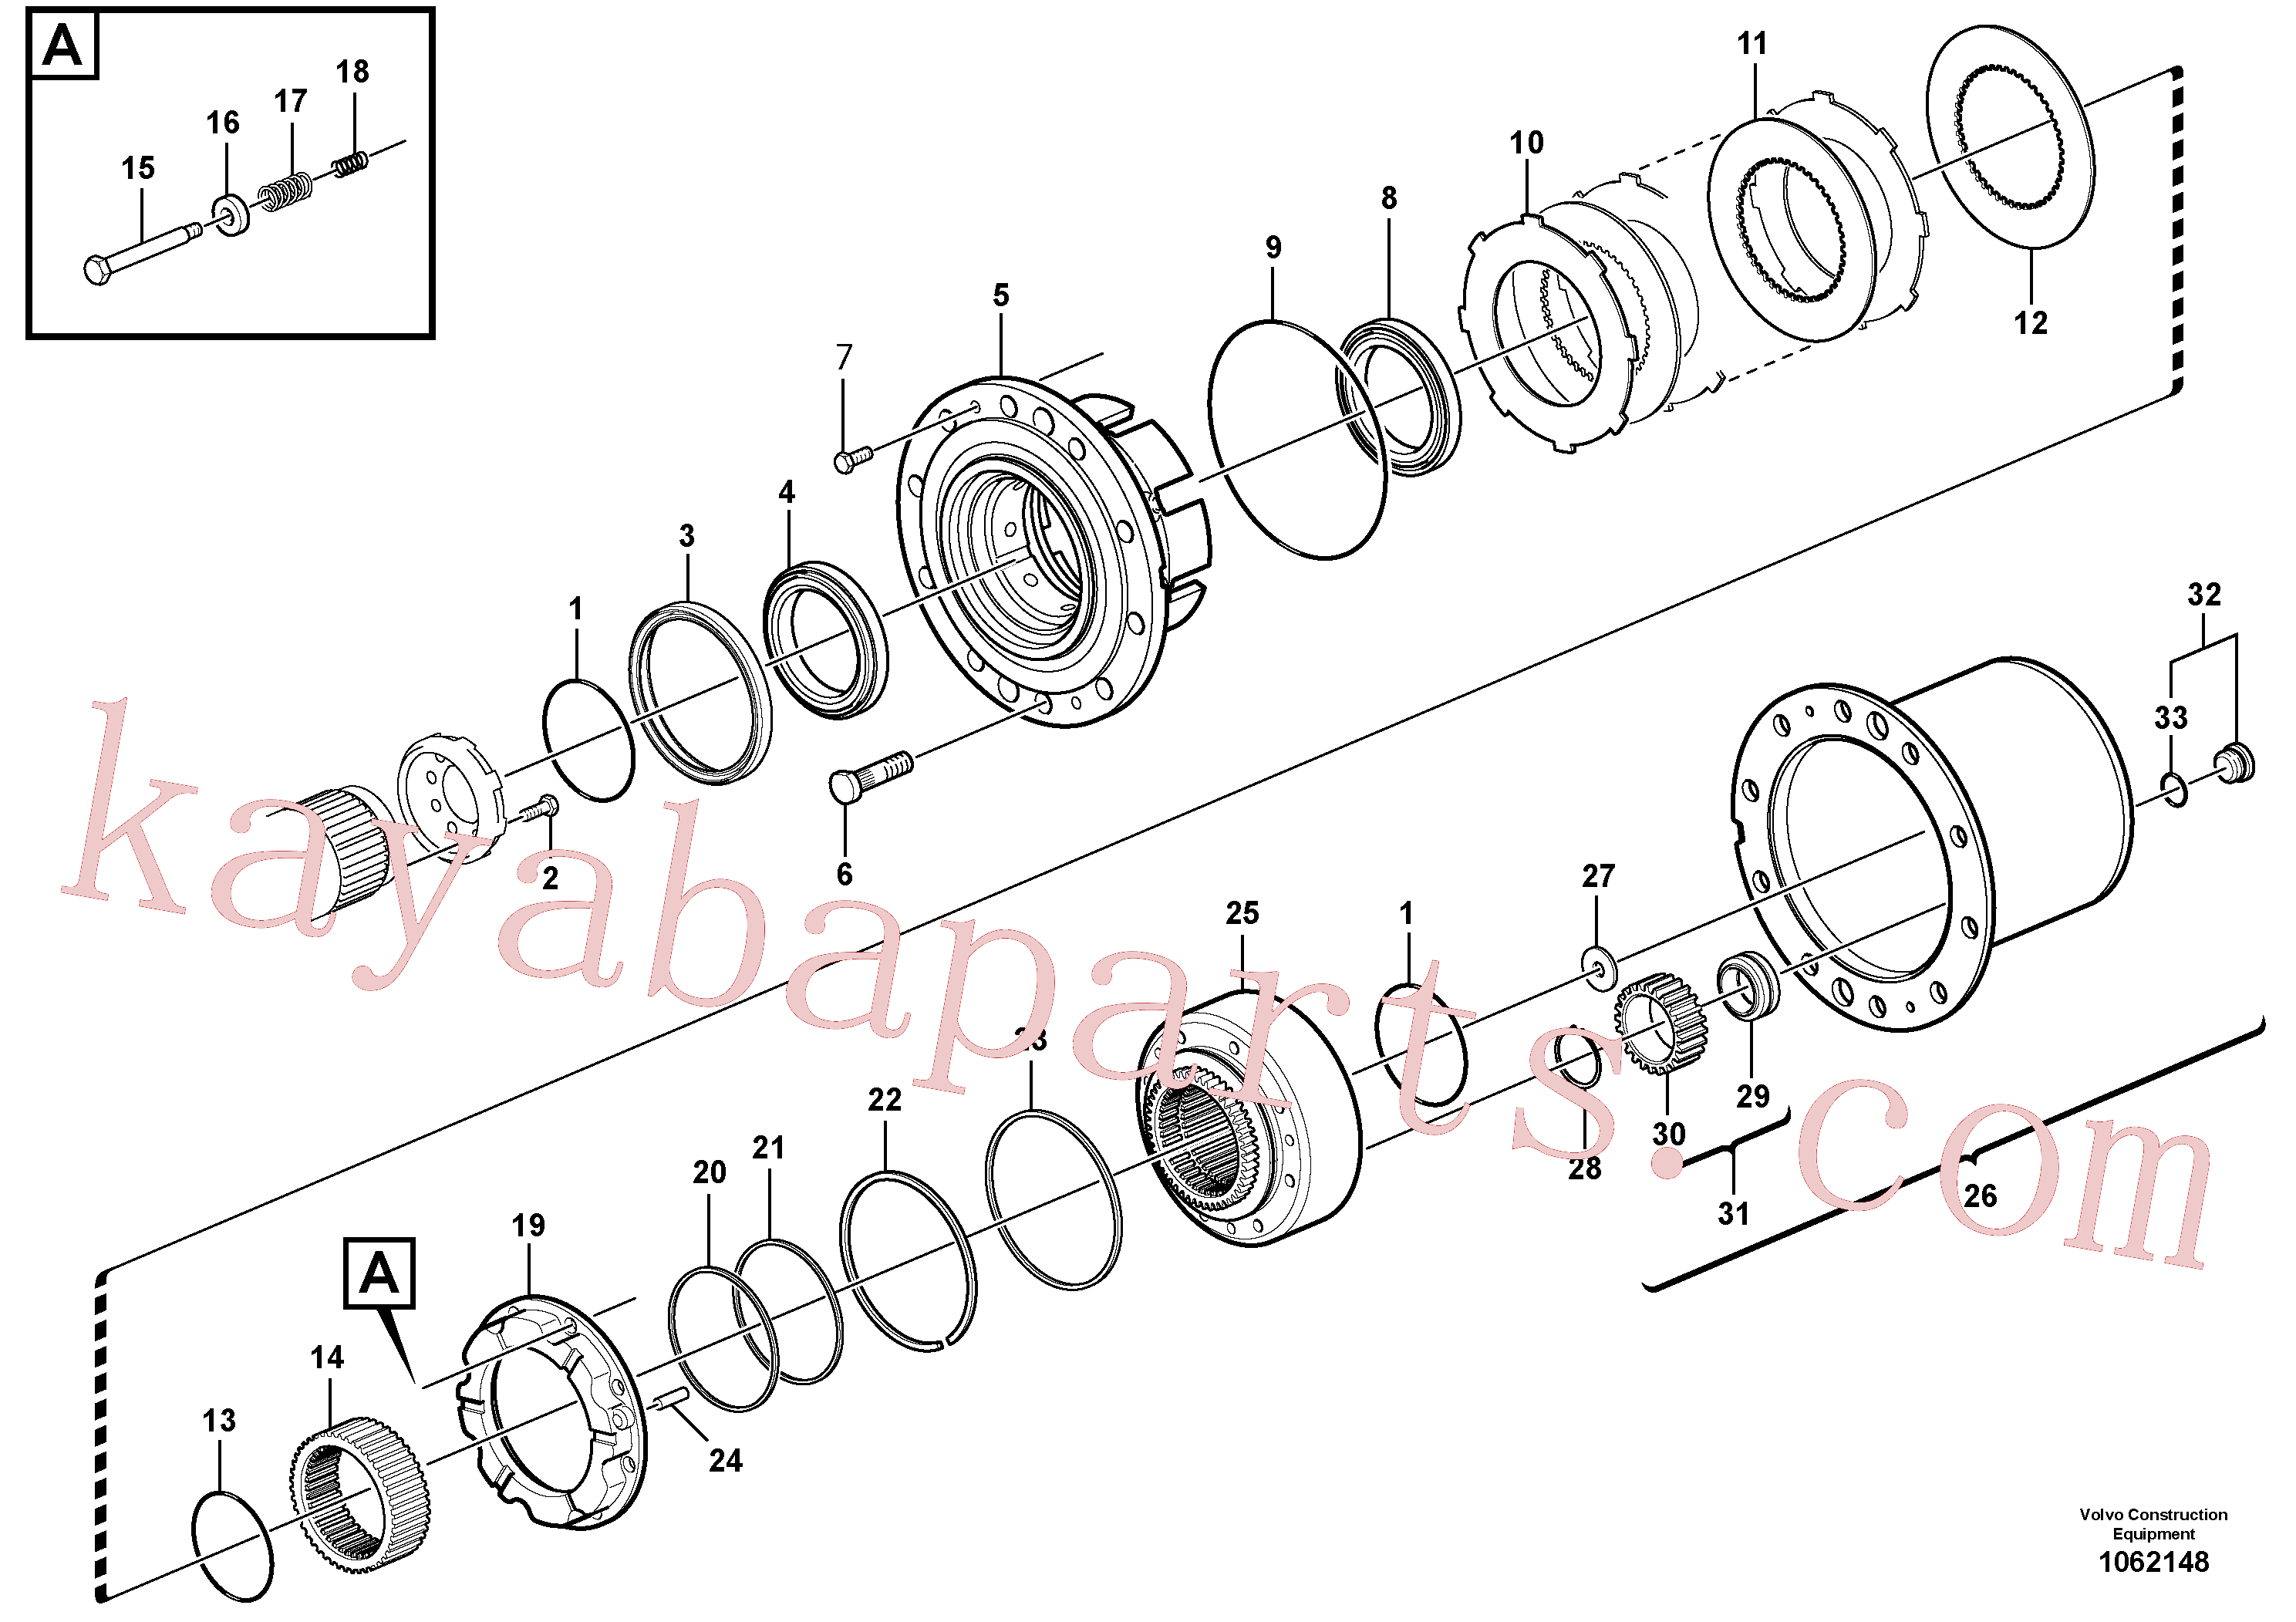 VOE15072376 for Volvo Rear axle, Hub reduction, Front axle, Hub reduction(1062148 assembly)